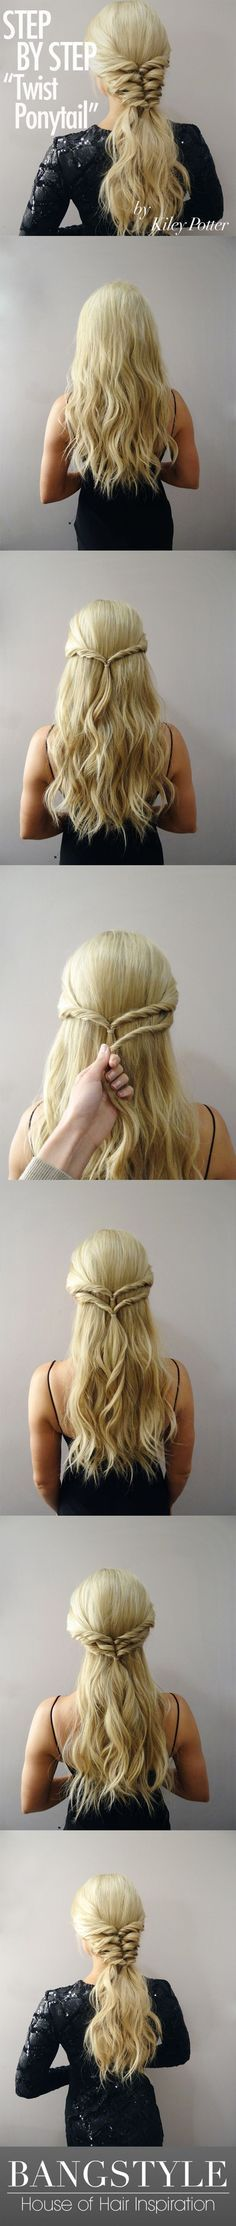 Can't decide between a pony tail and a braid? Bring both together in perfectio…